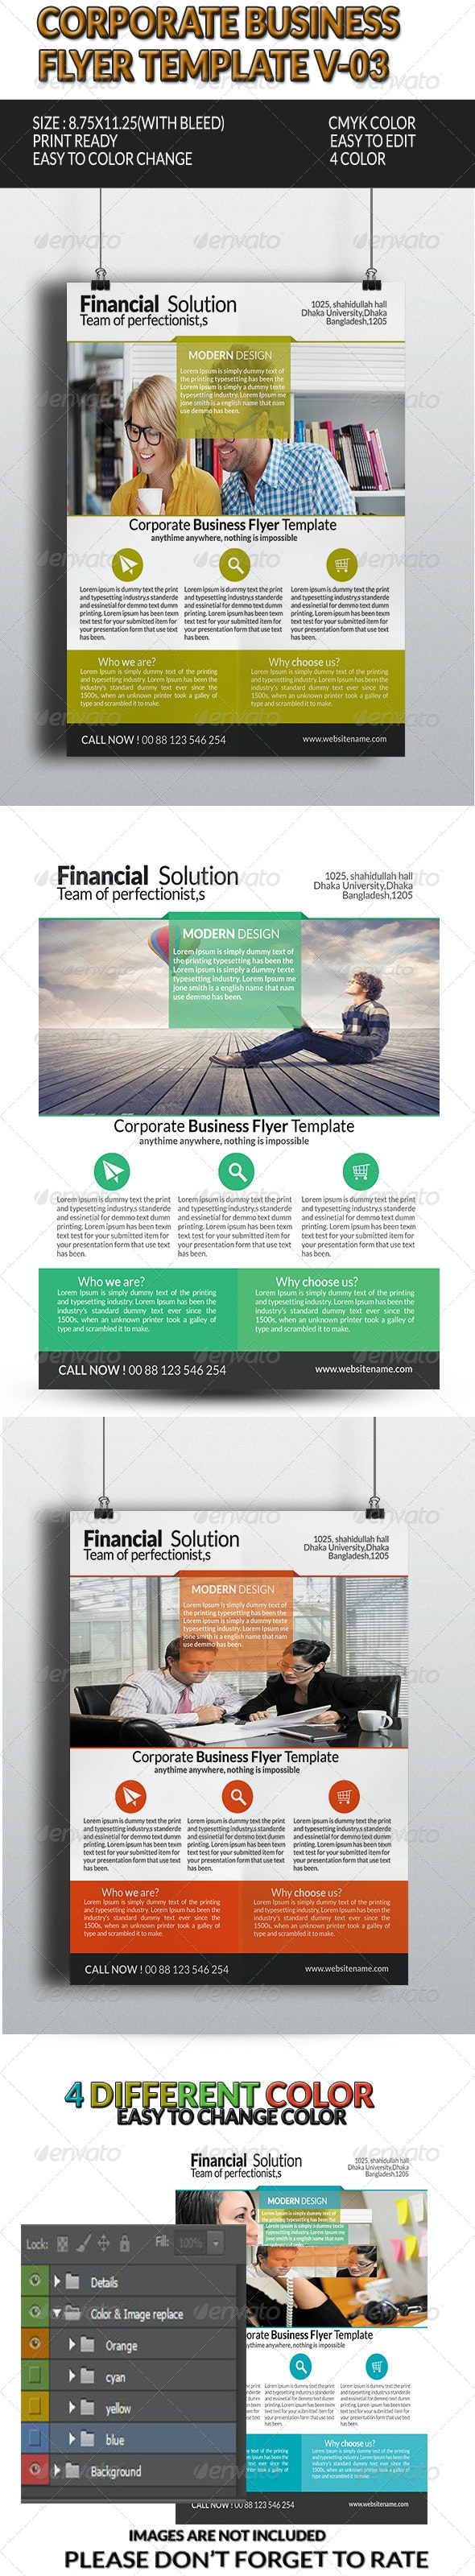 Corporate Business Flyer Template V-3 - Corporate Flyers